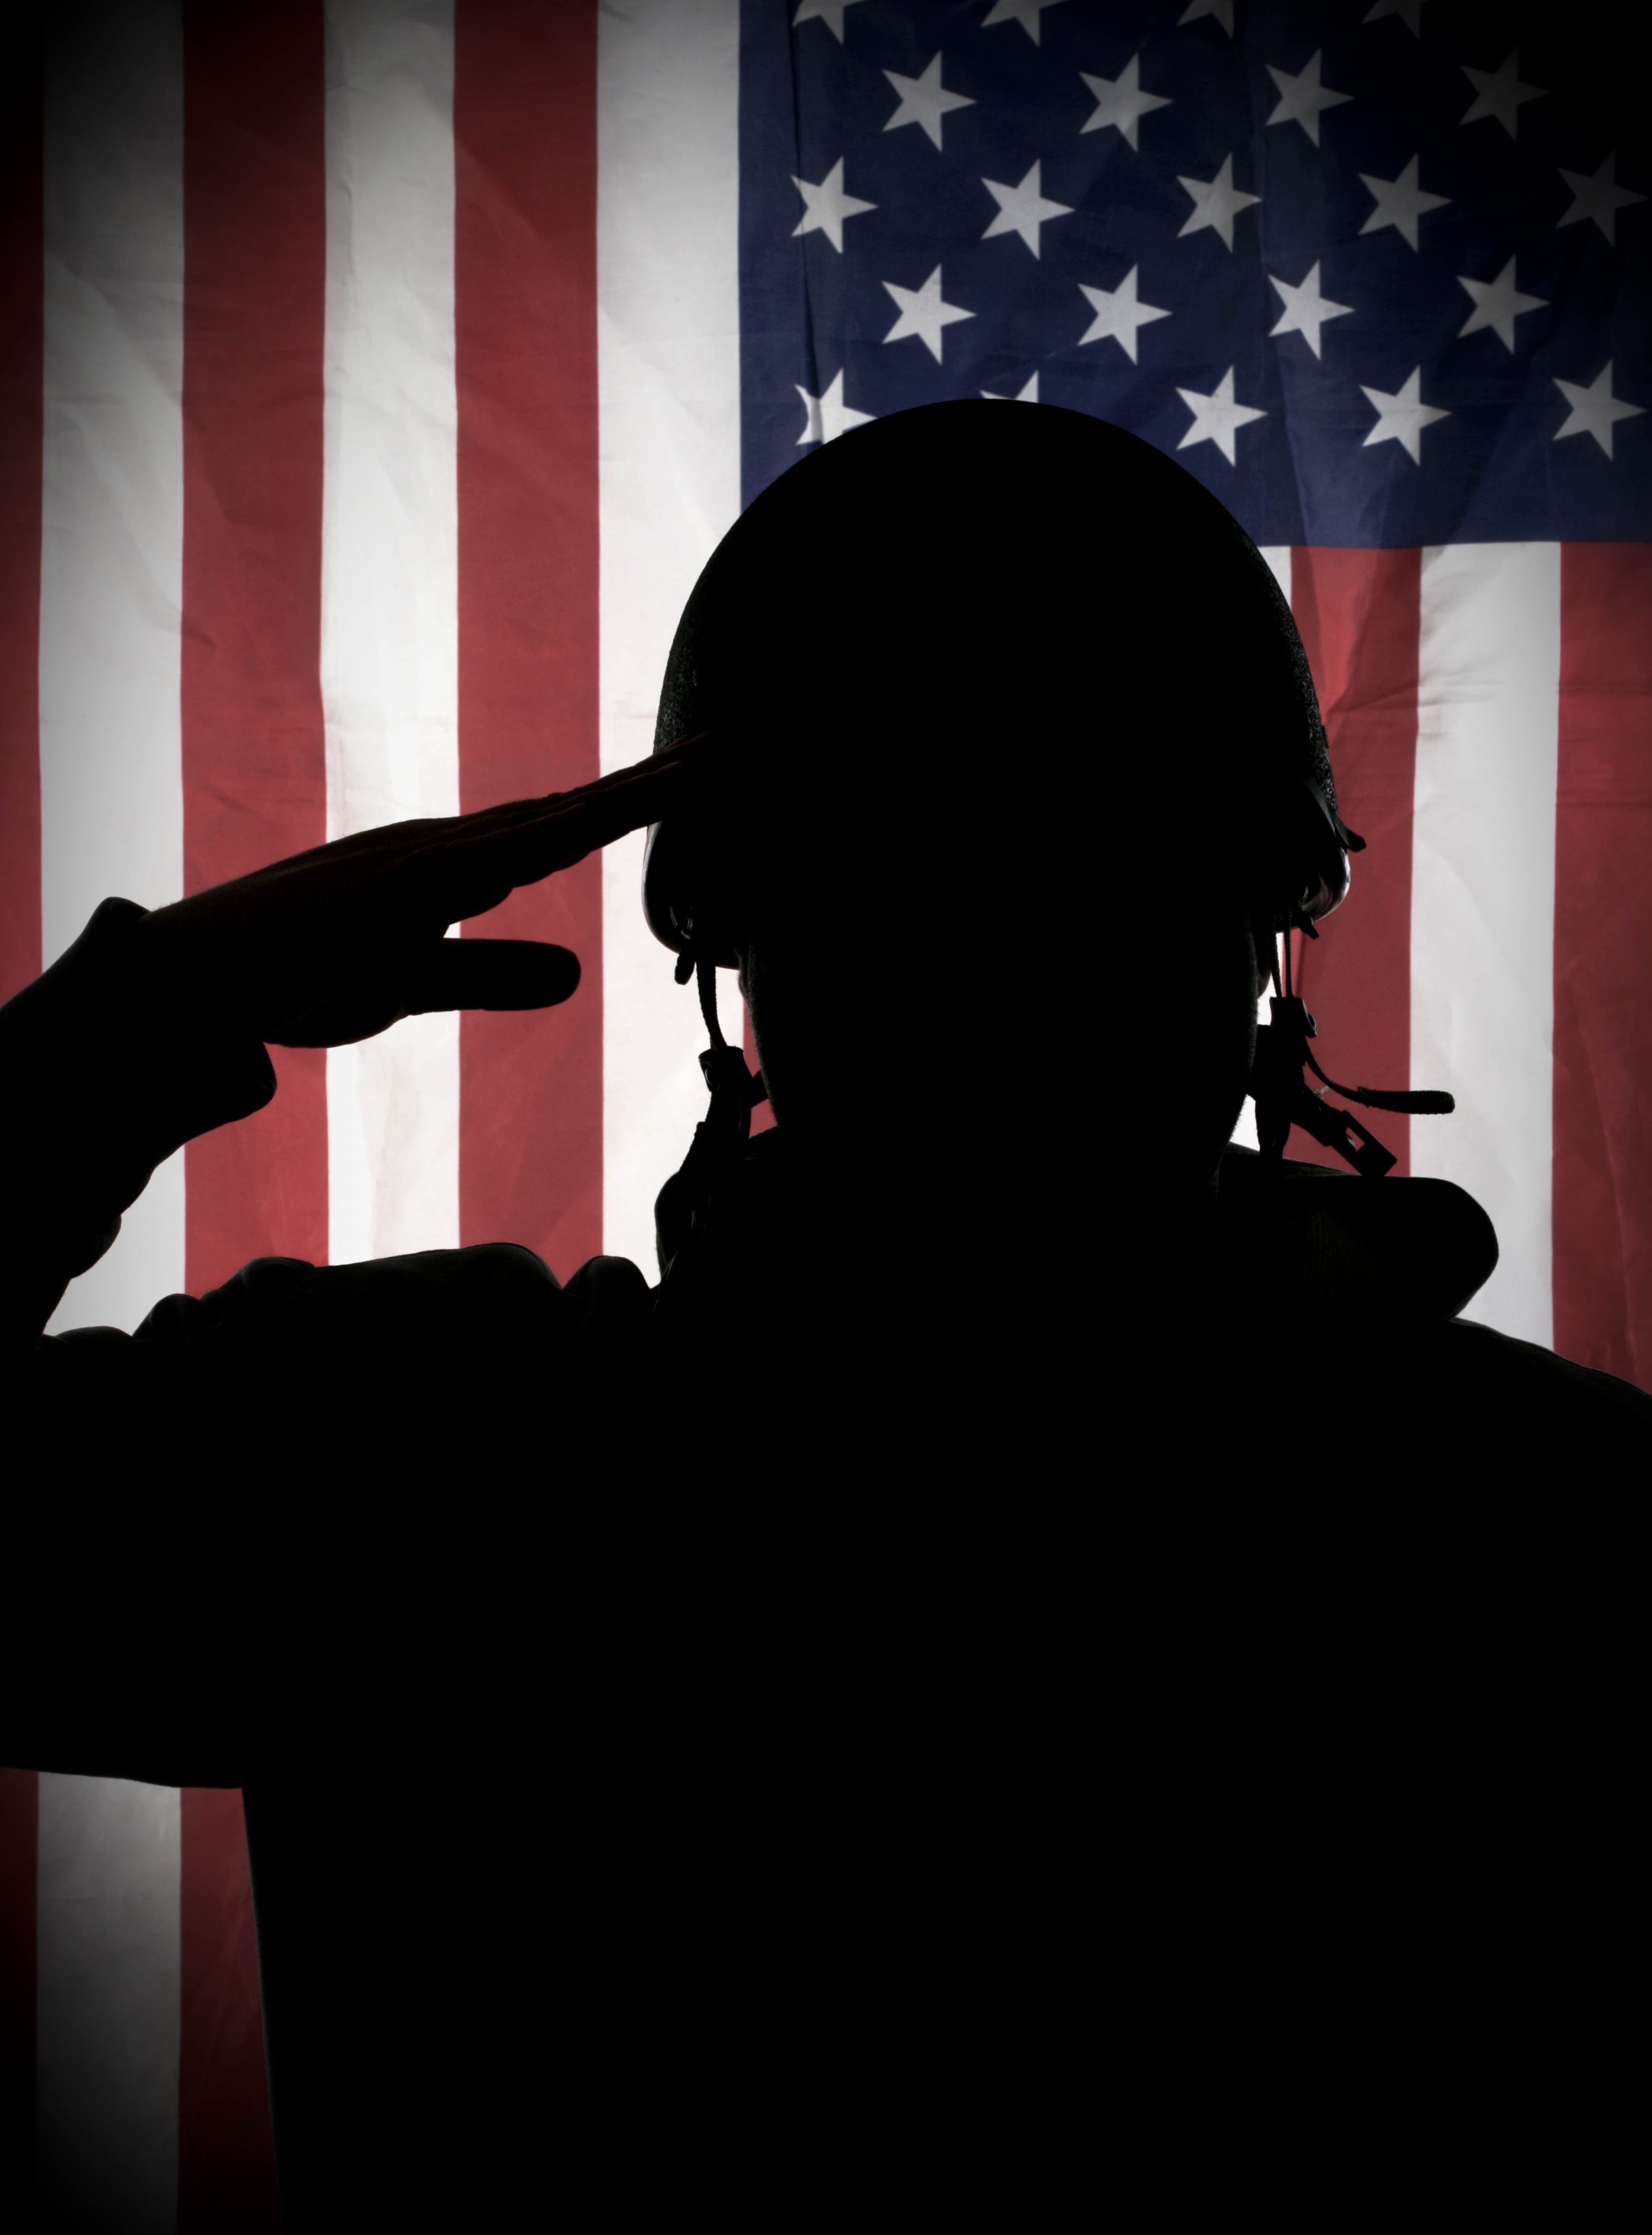 Soldier saluting at the American flag